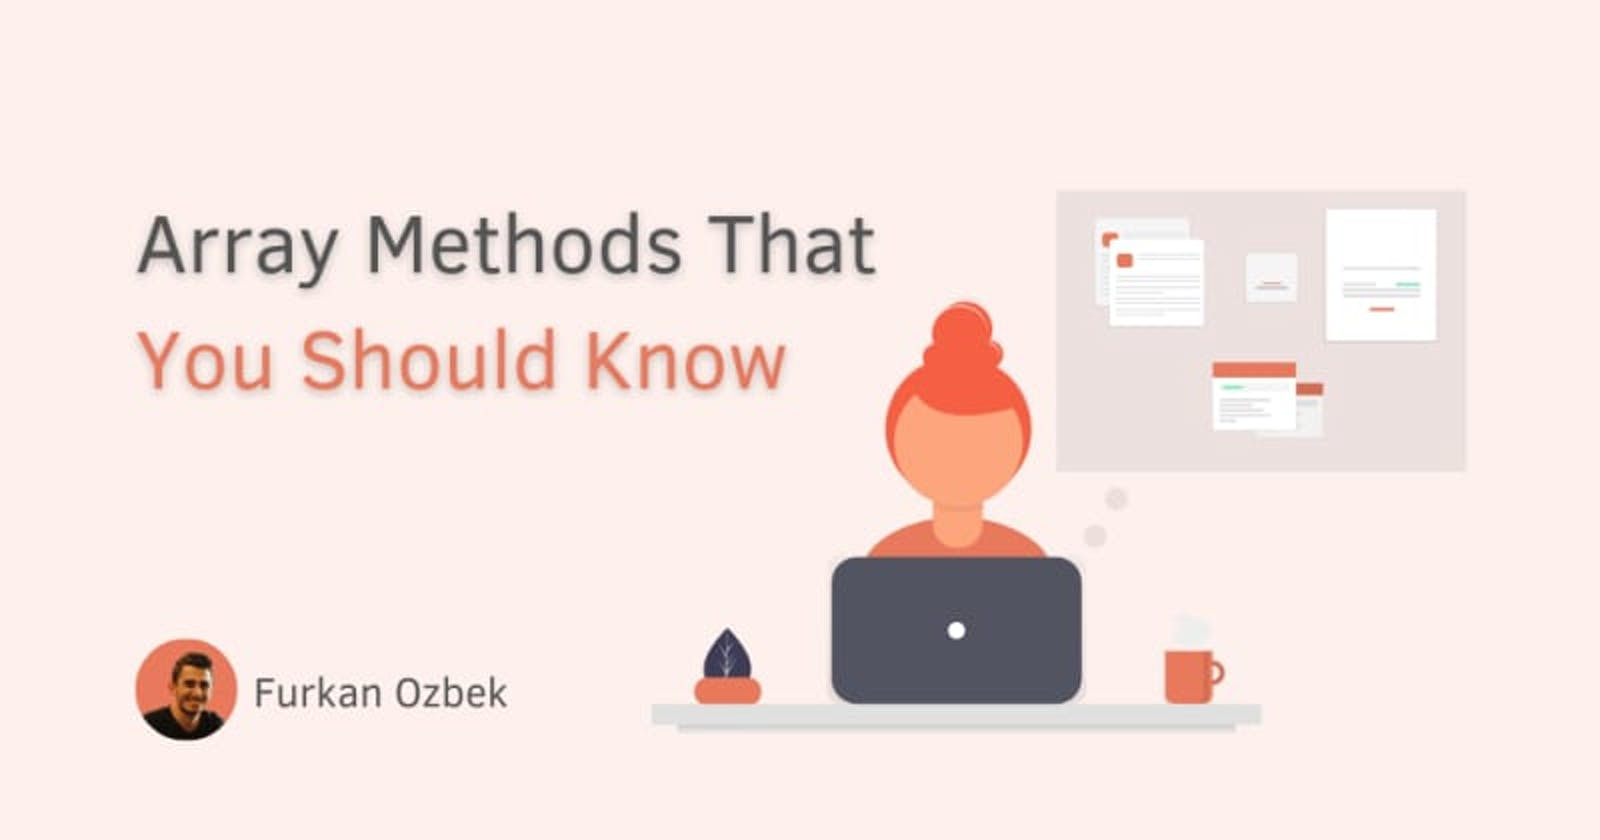 Array methods that you should know